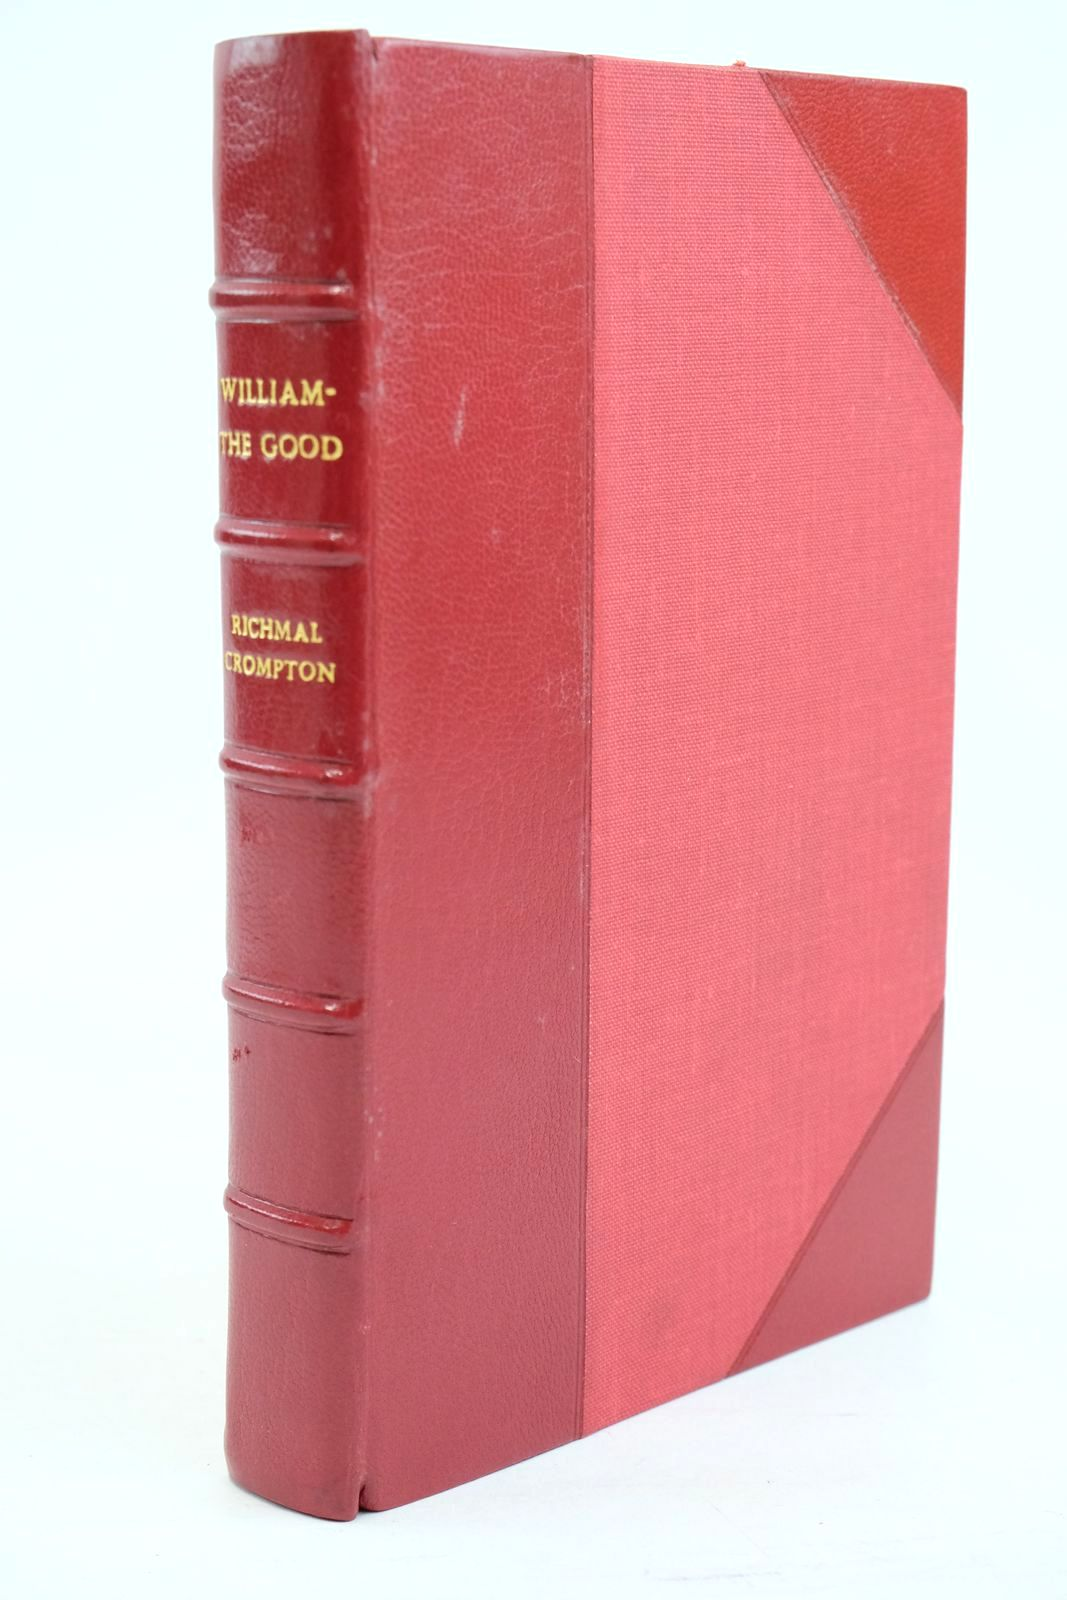 Photo of WILLIAM THE GOOD written by Crompton, Richmal illustrated by Henry, Thomas published by George Newnes Limited (STOCK CODE: 1320869)  for sale by Stella & Rose's Books